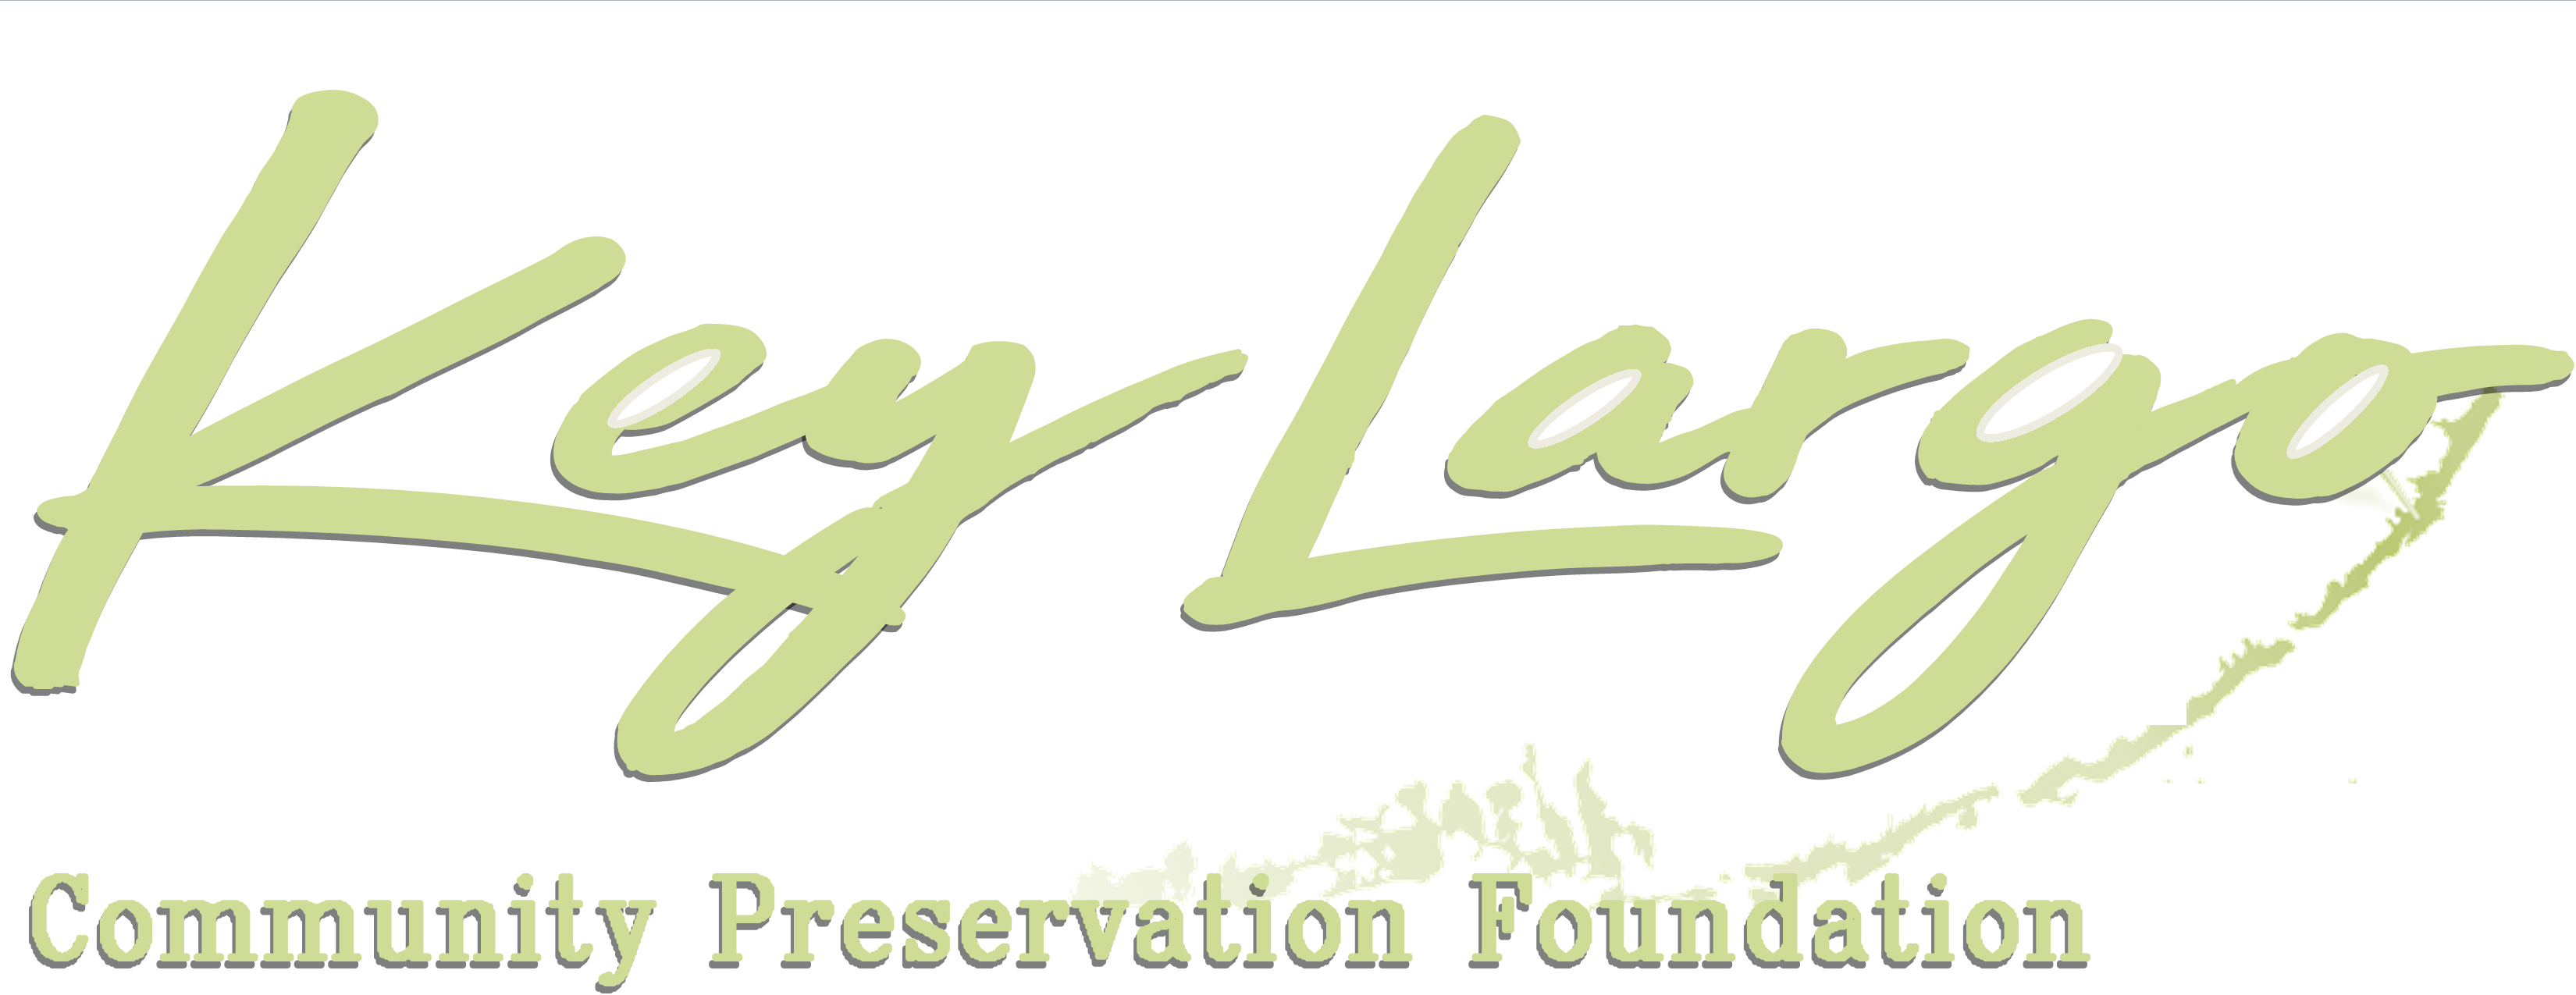 Key Largo Community Preservation logo (2)